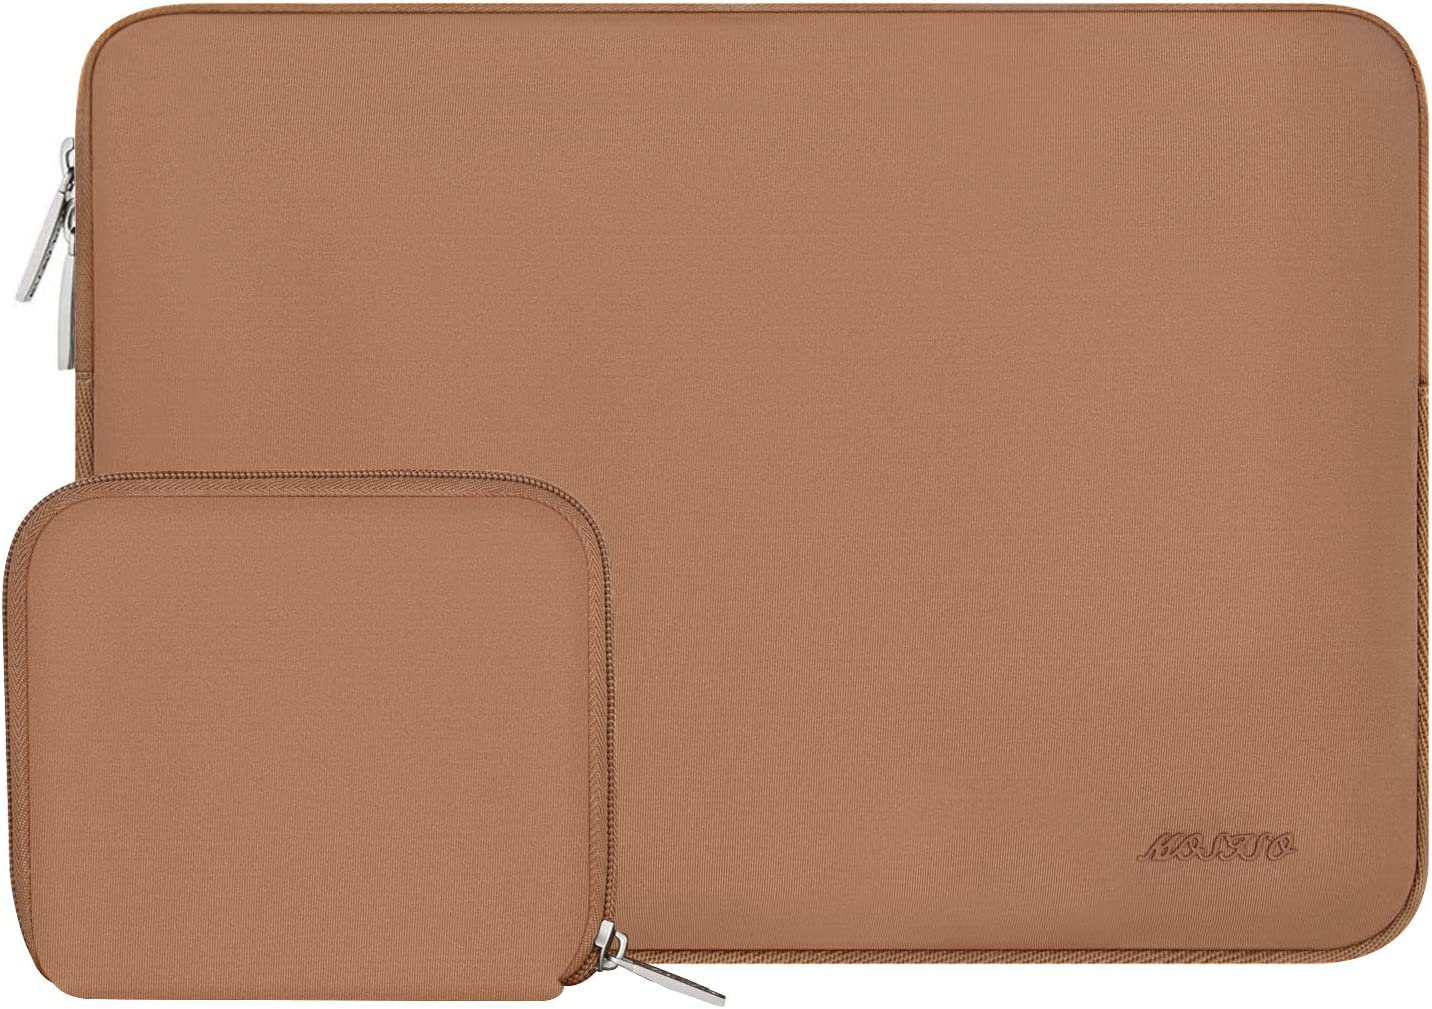 MOSISO Laptop Sleeve Compatible with 13-13.3 inch MacBook Pro, MacBook Air, Notebook Computer, Water Repellent Neoprene Bag with Small Case, Brown